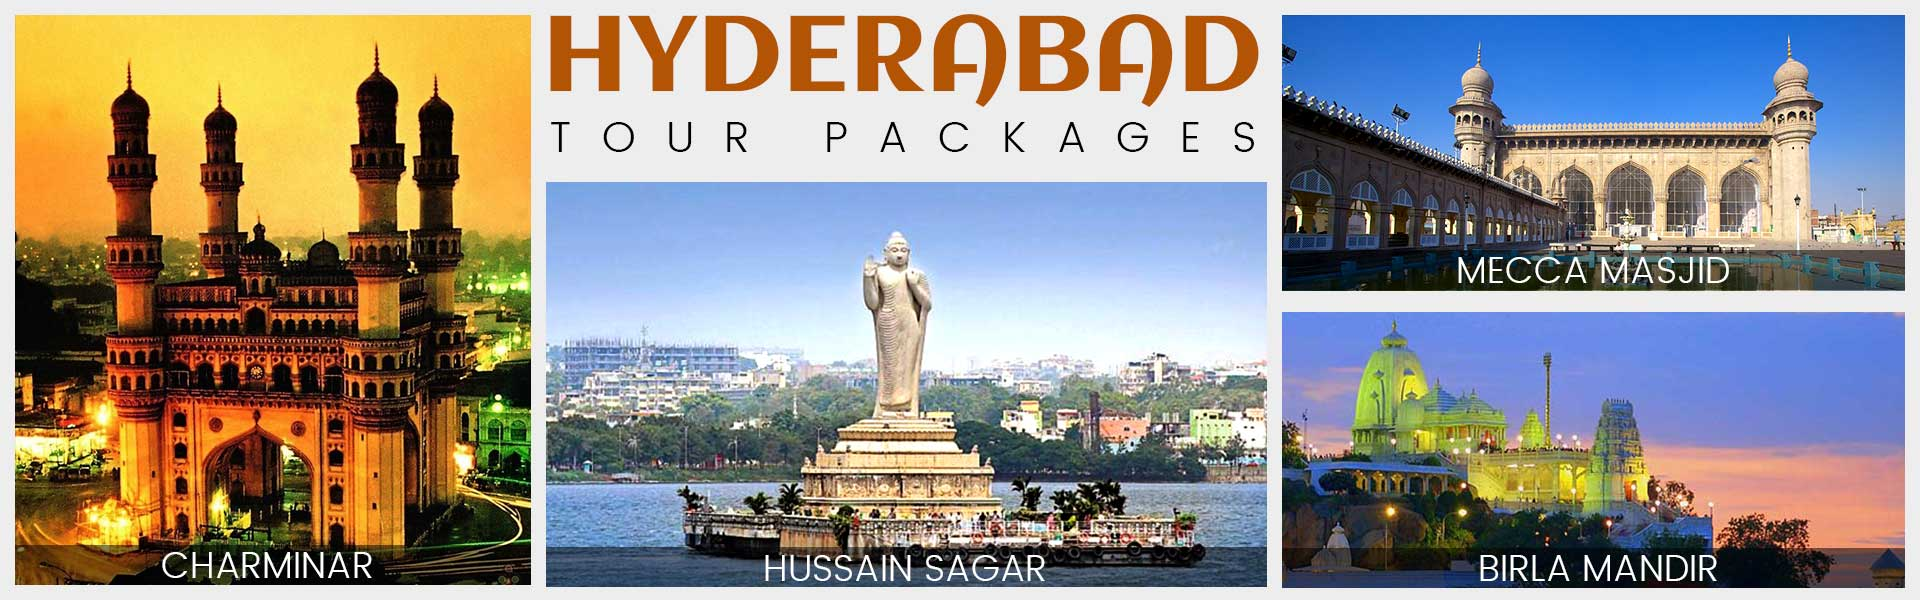 hyderabad-tour-packages